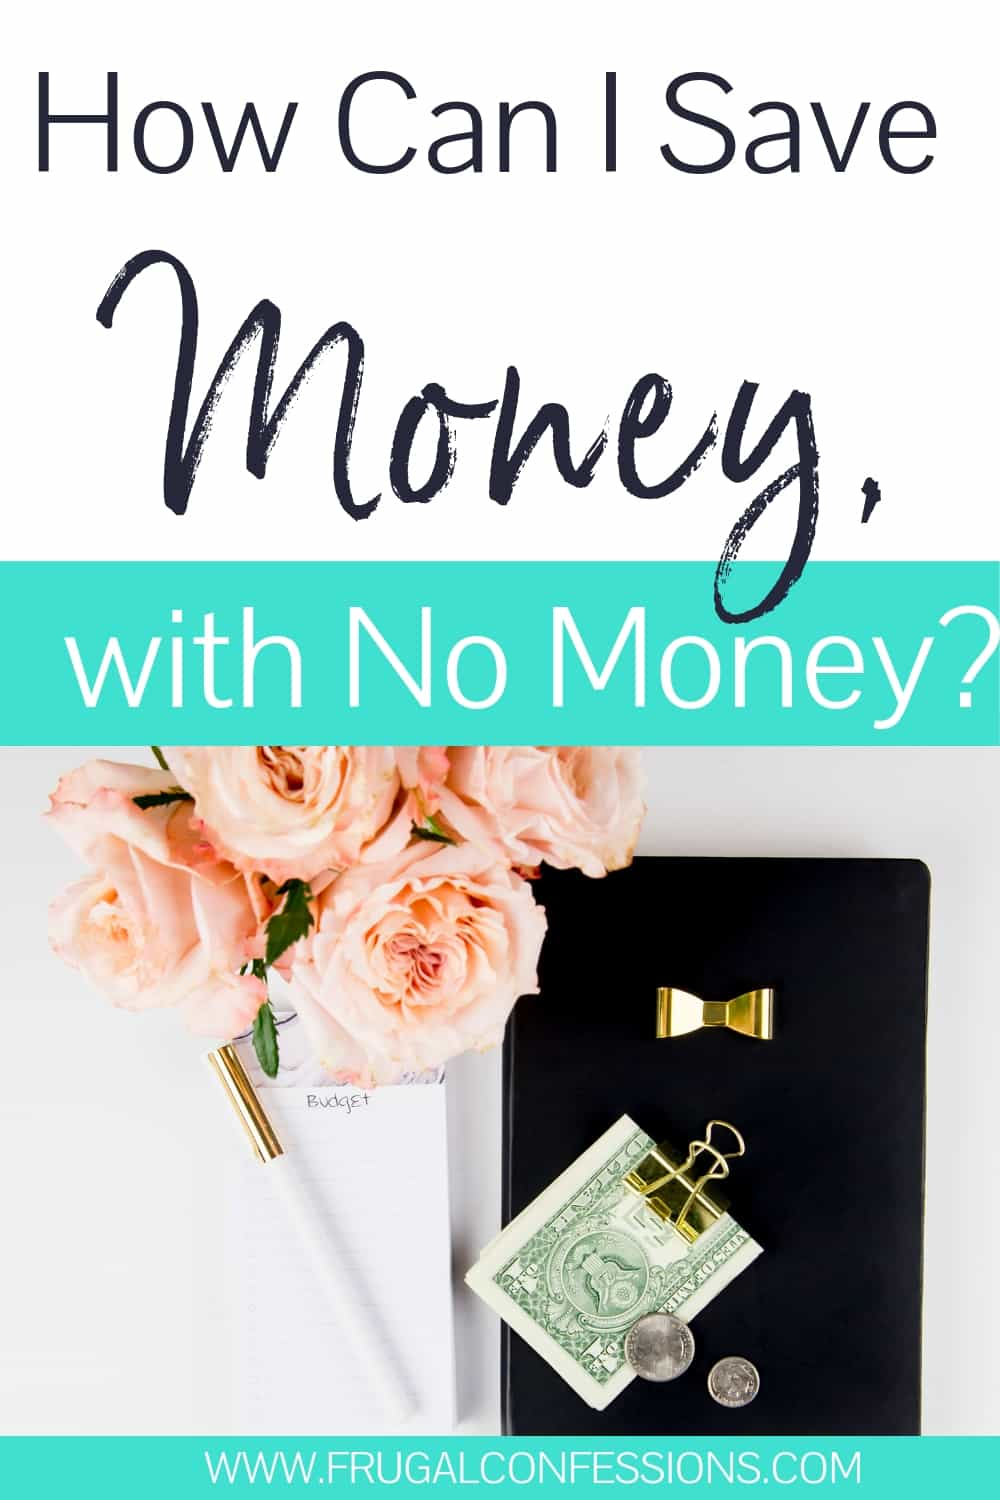 desk with peach roses, money clip, money, notepad, text overlay how can I save money with no money?